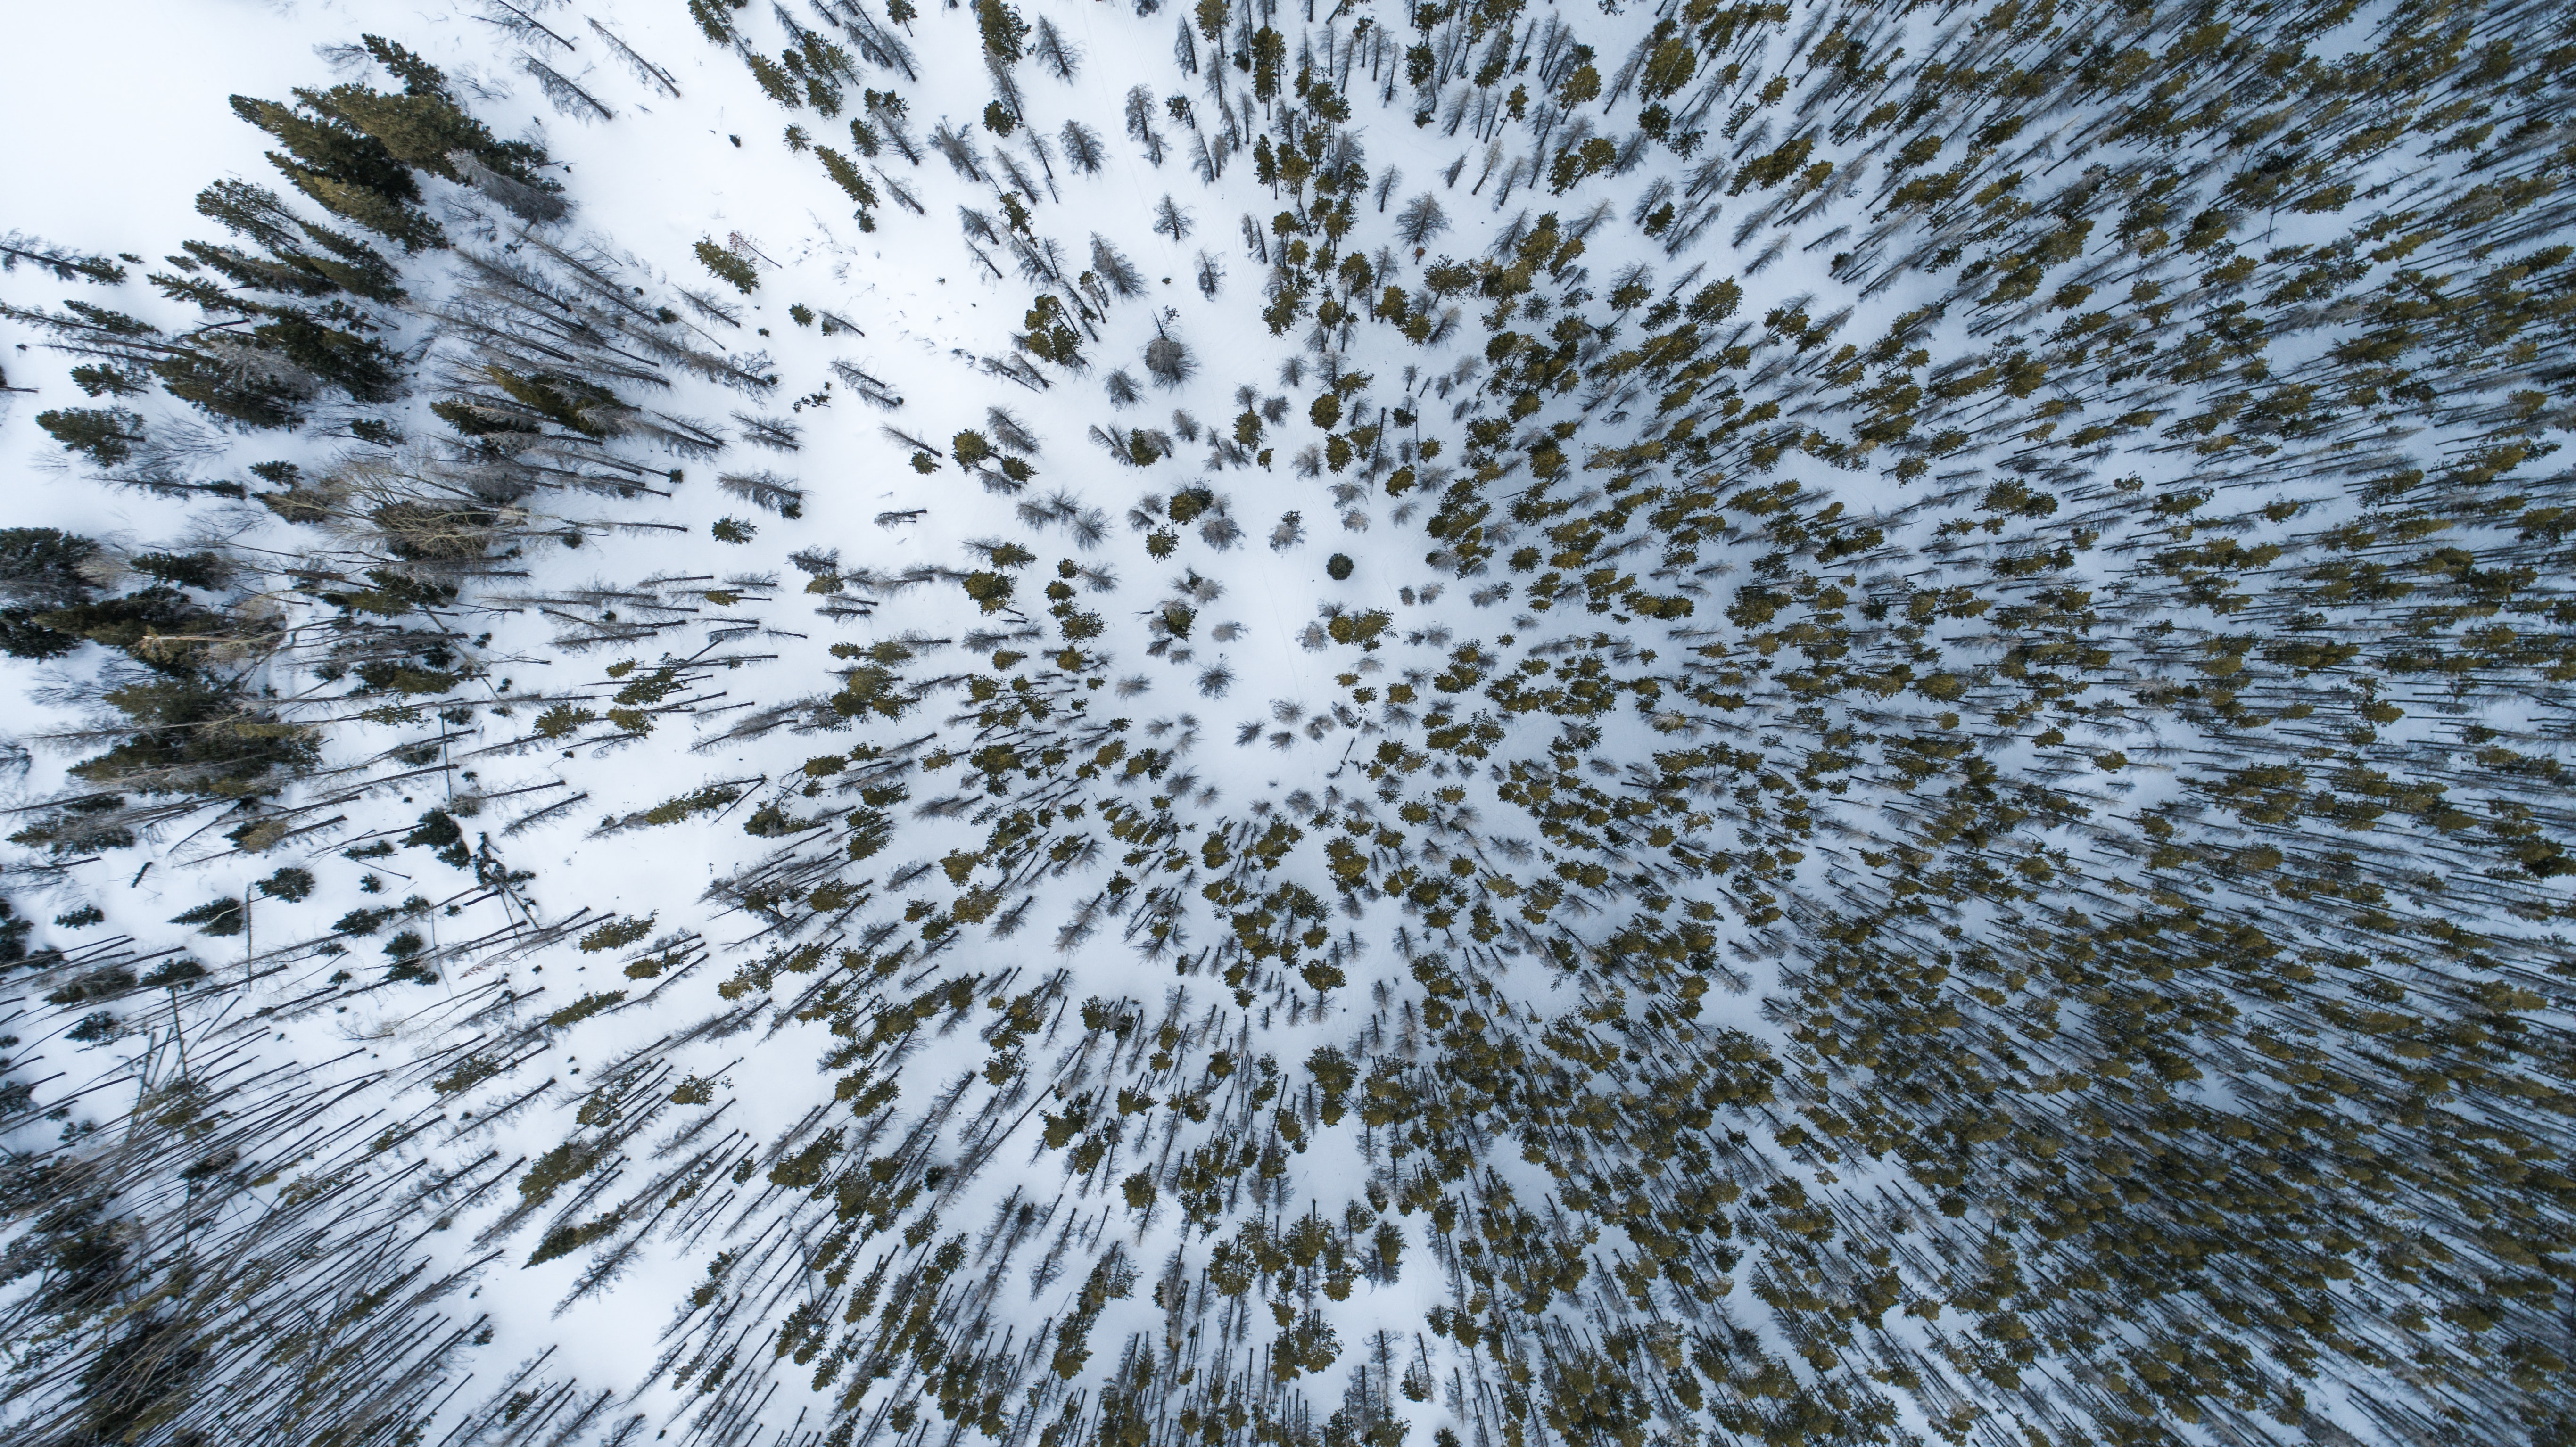 A drone shot of pine trees in snow